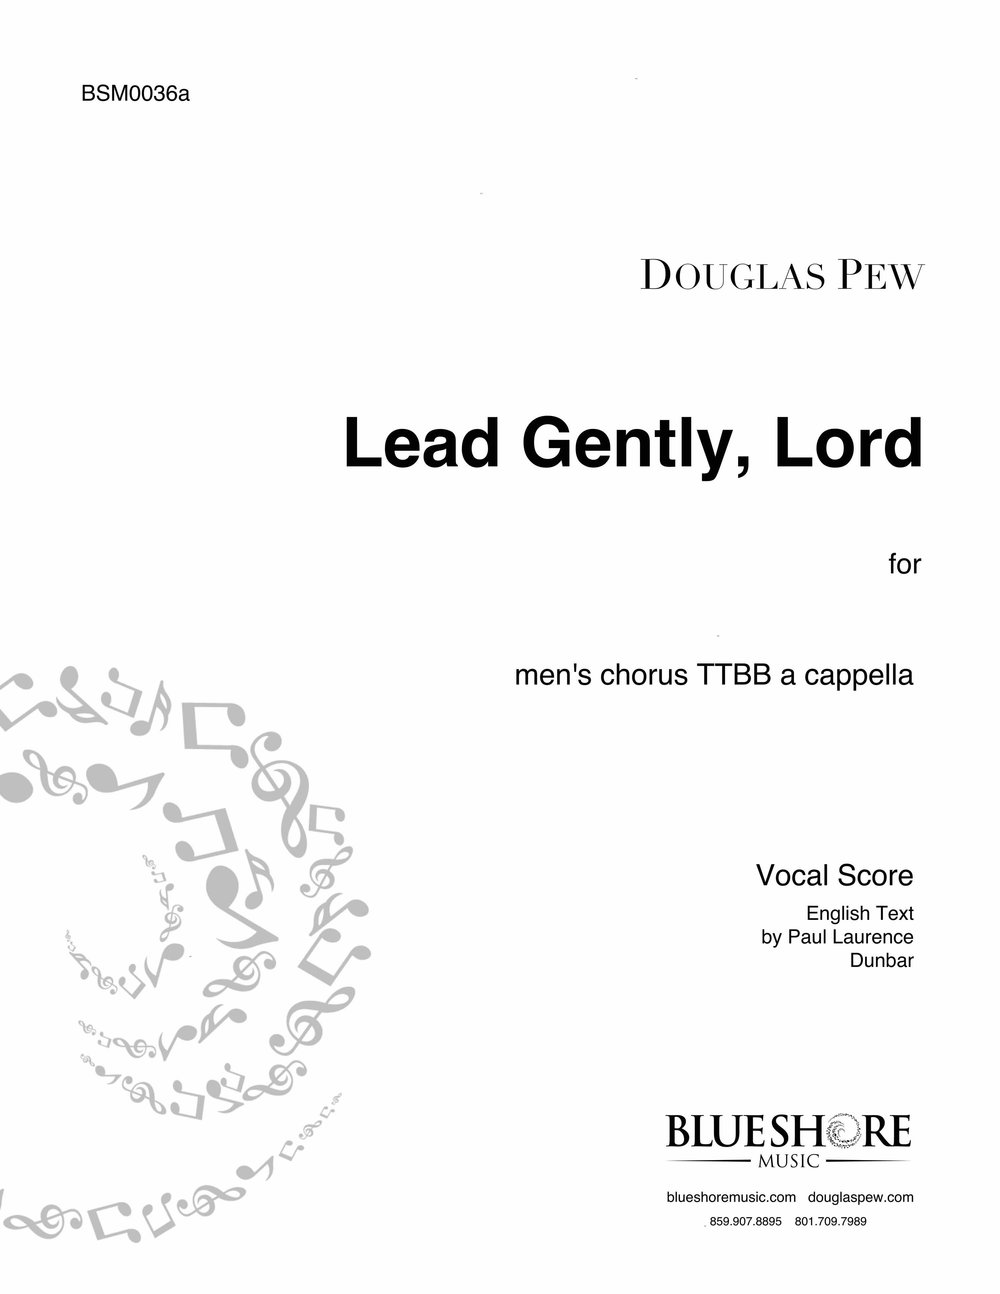 Lead Gently, Lord, for TTBB (or SATB) a cappella